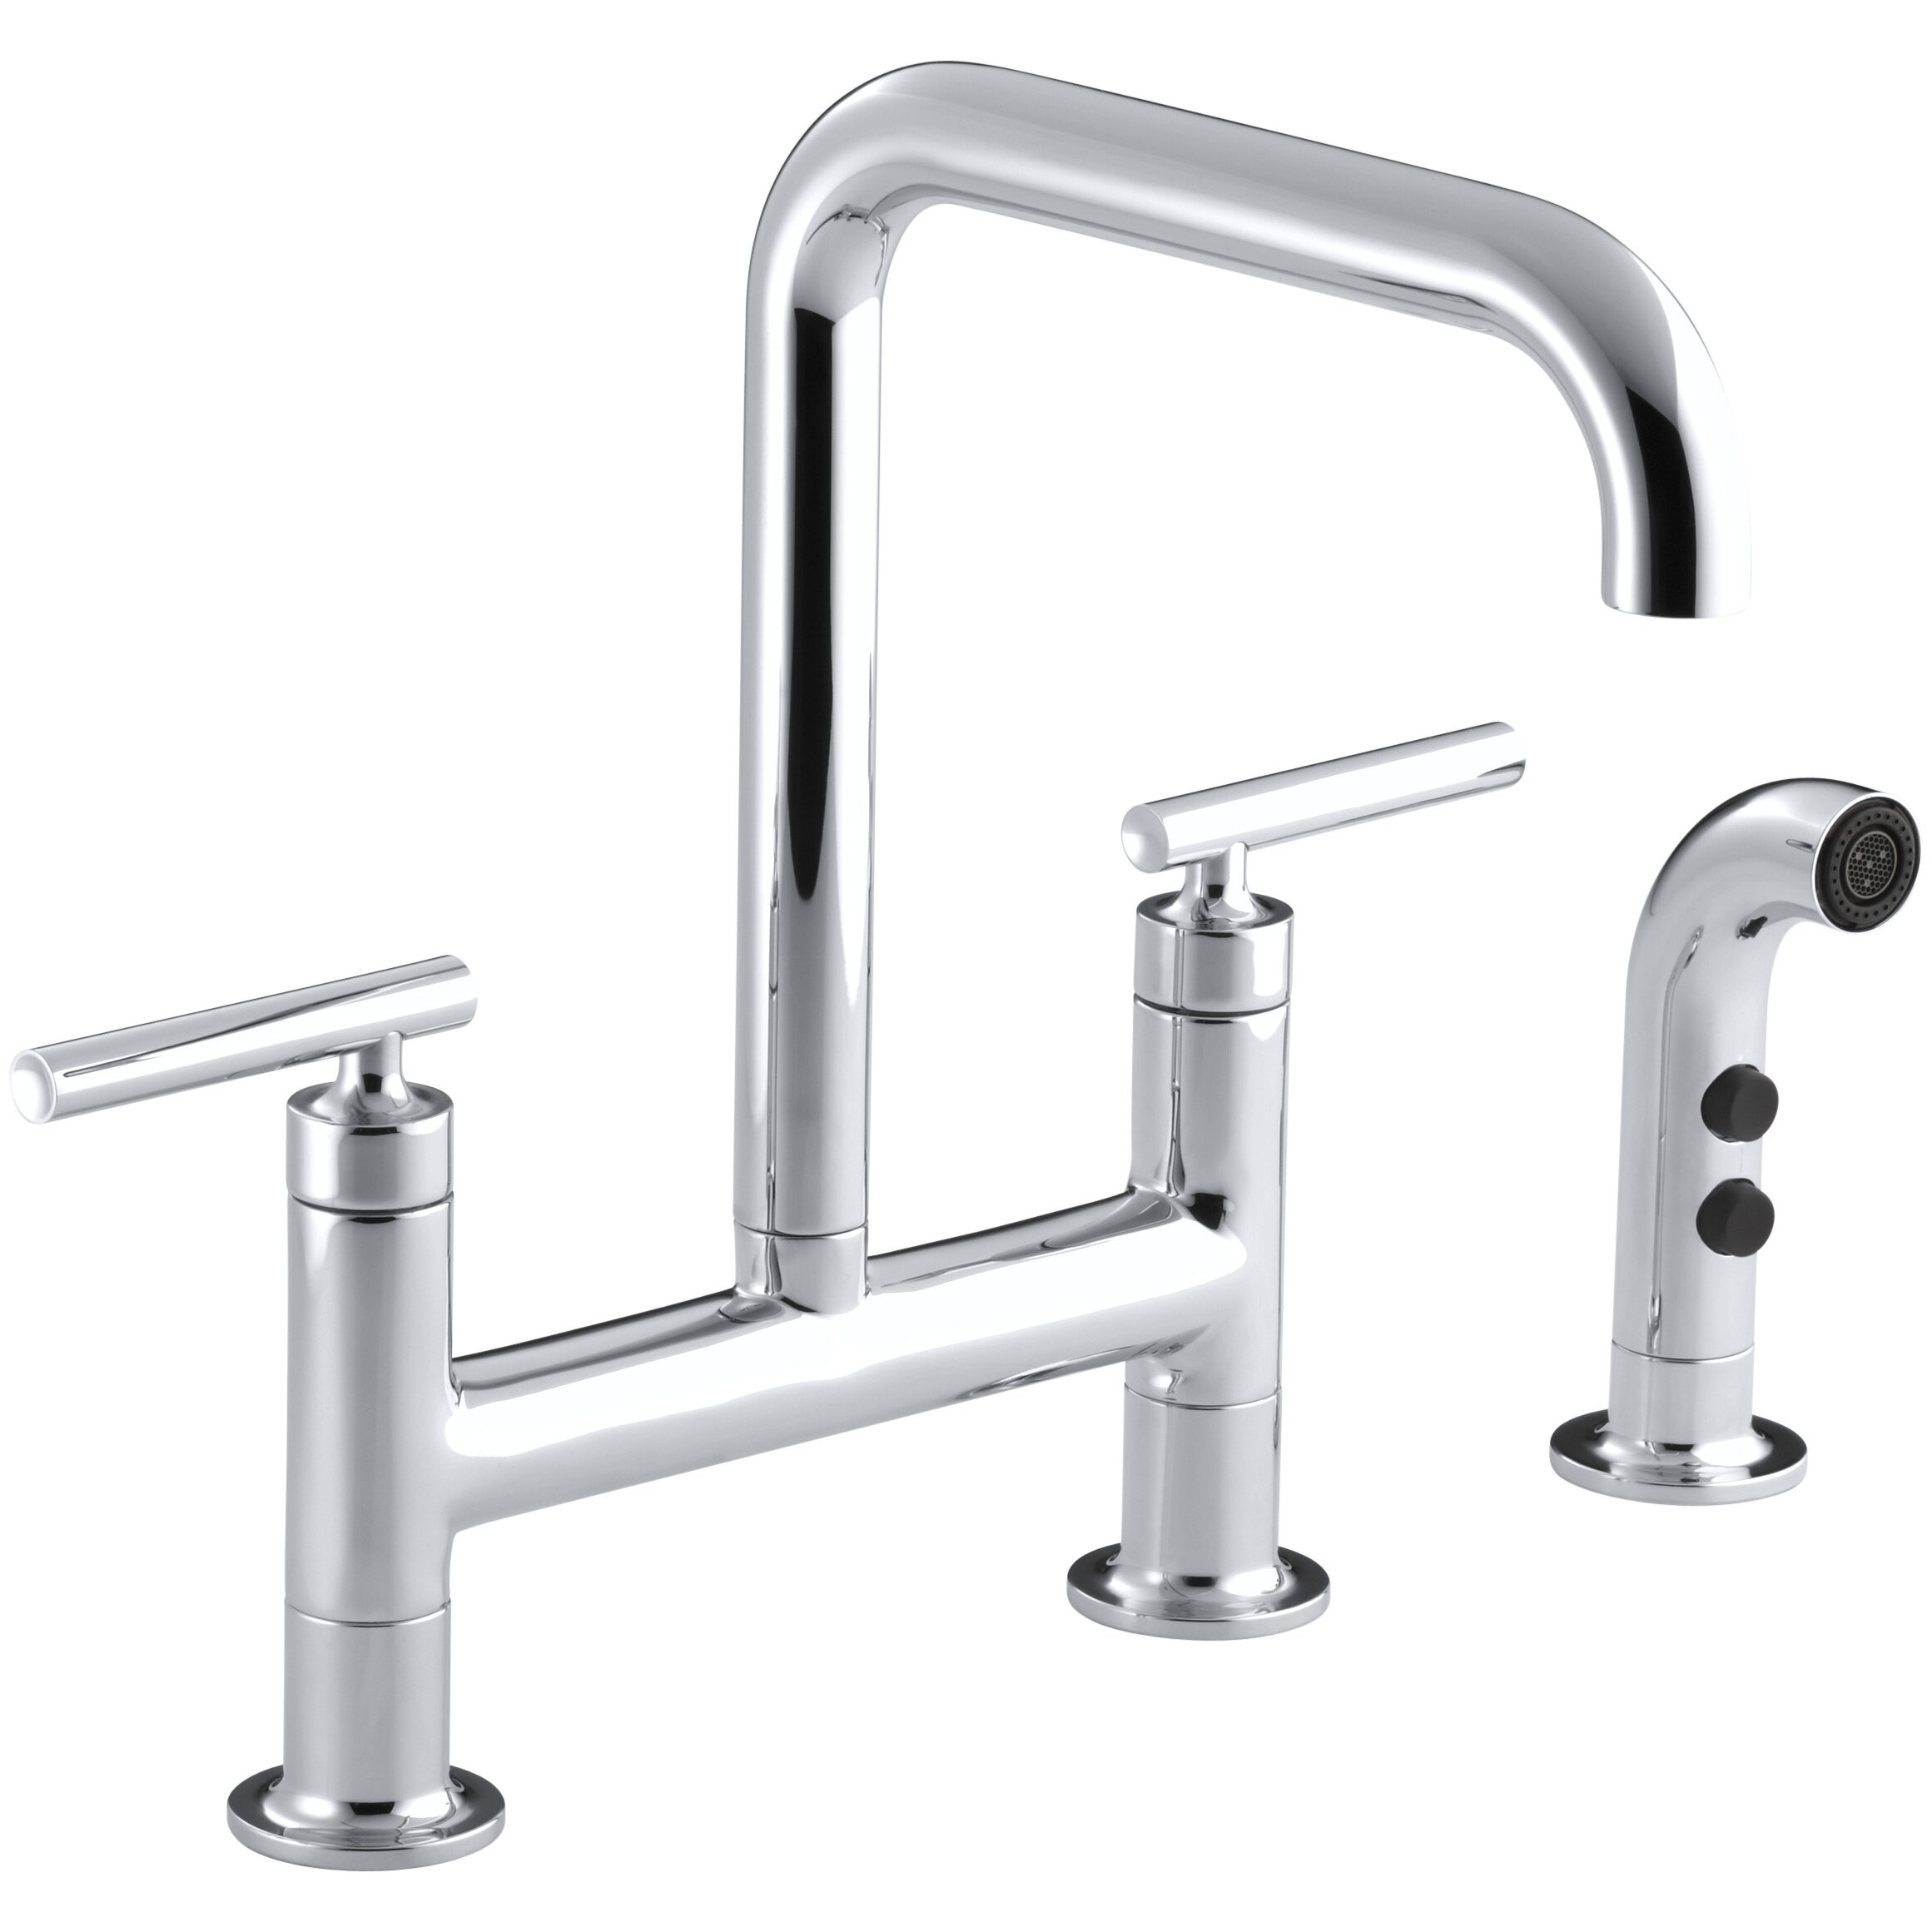 Rohl Kitchen Faucets Reviews Kohler Purist Deck Mount Kitchen Sink Faucet Reviews Wayfair